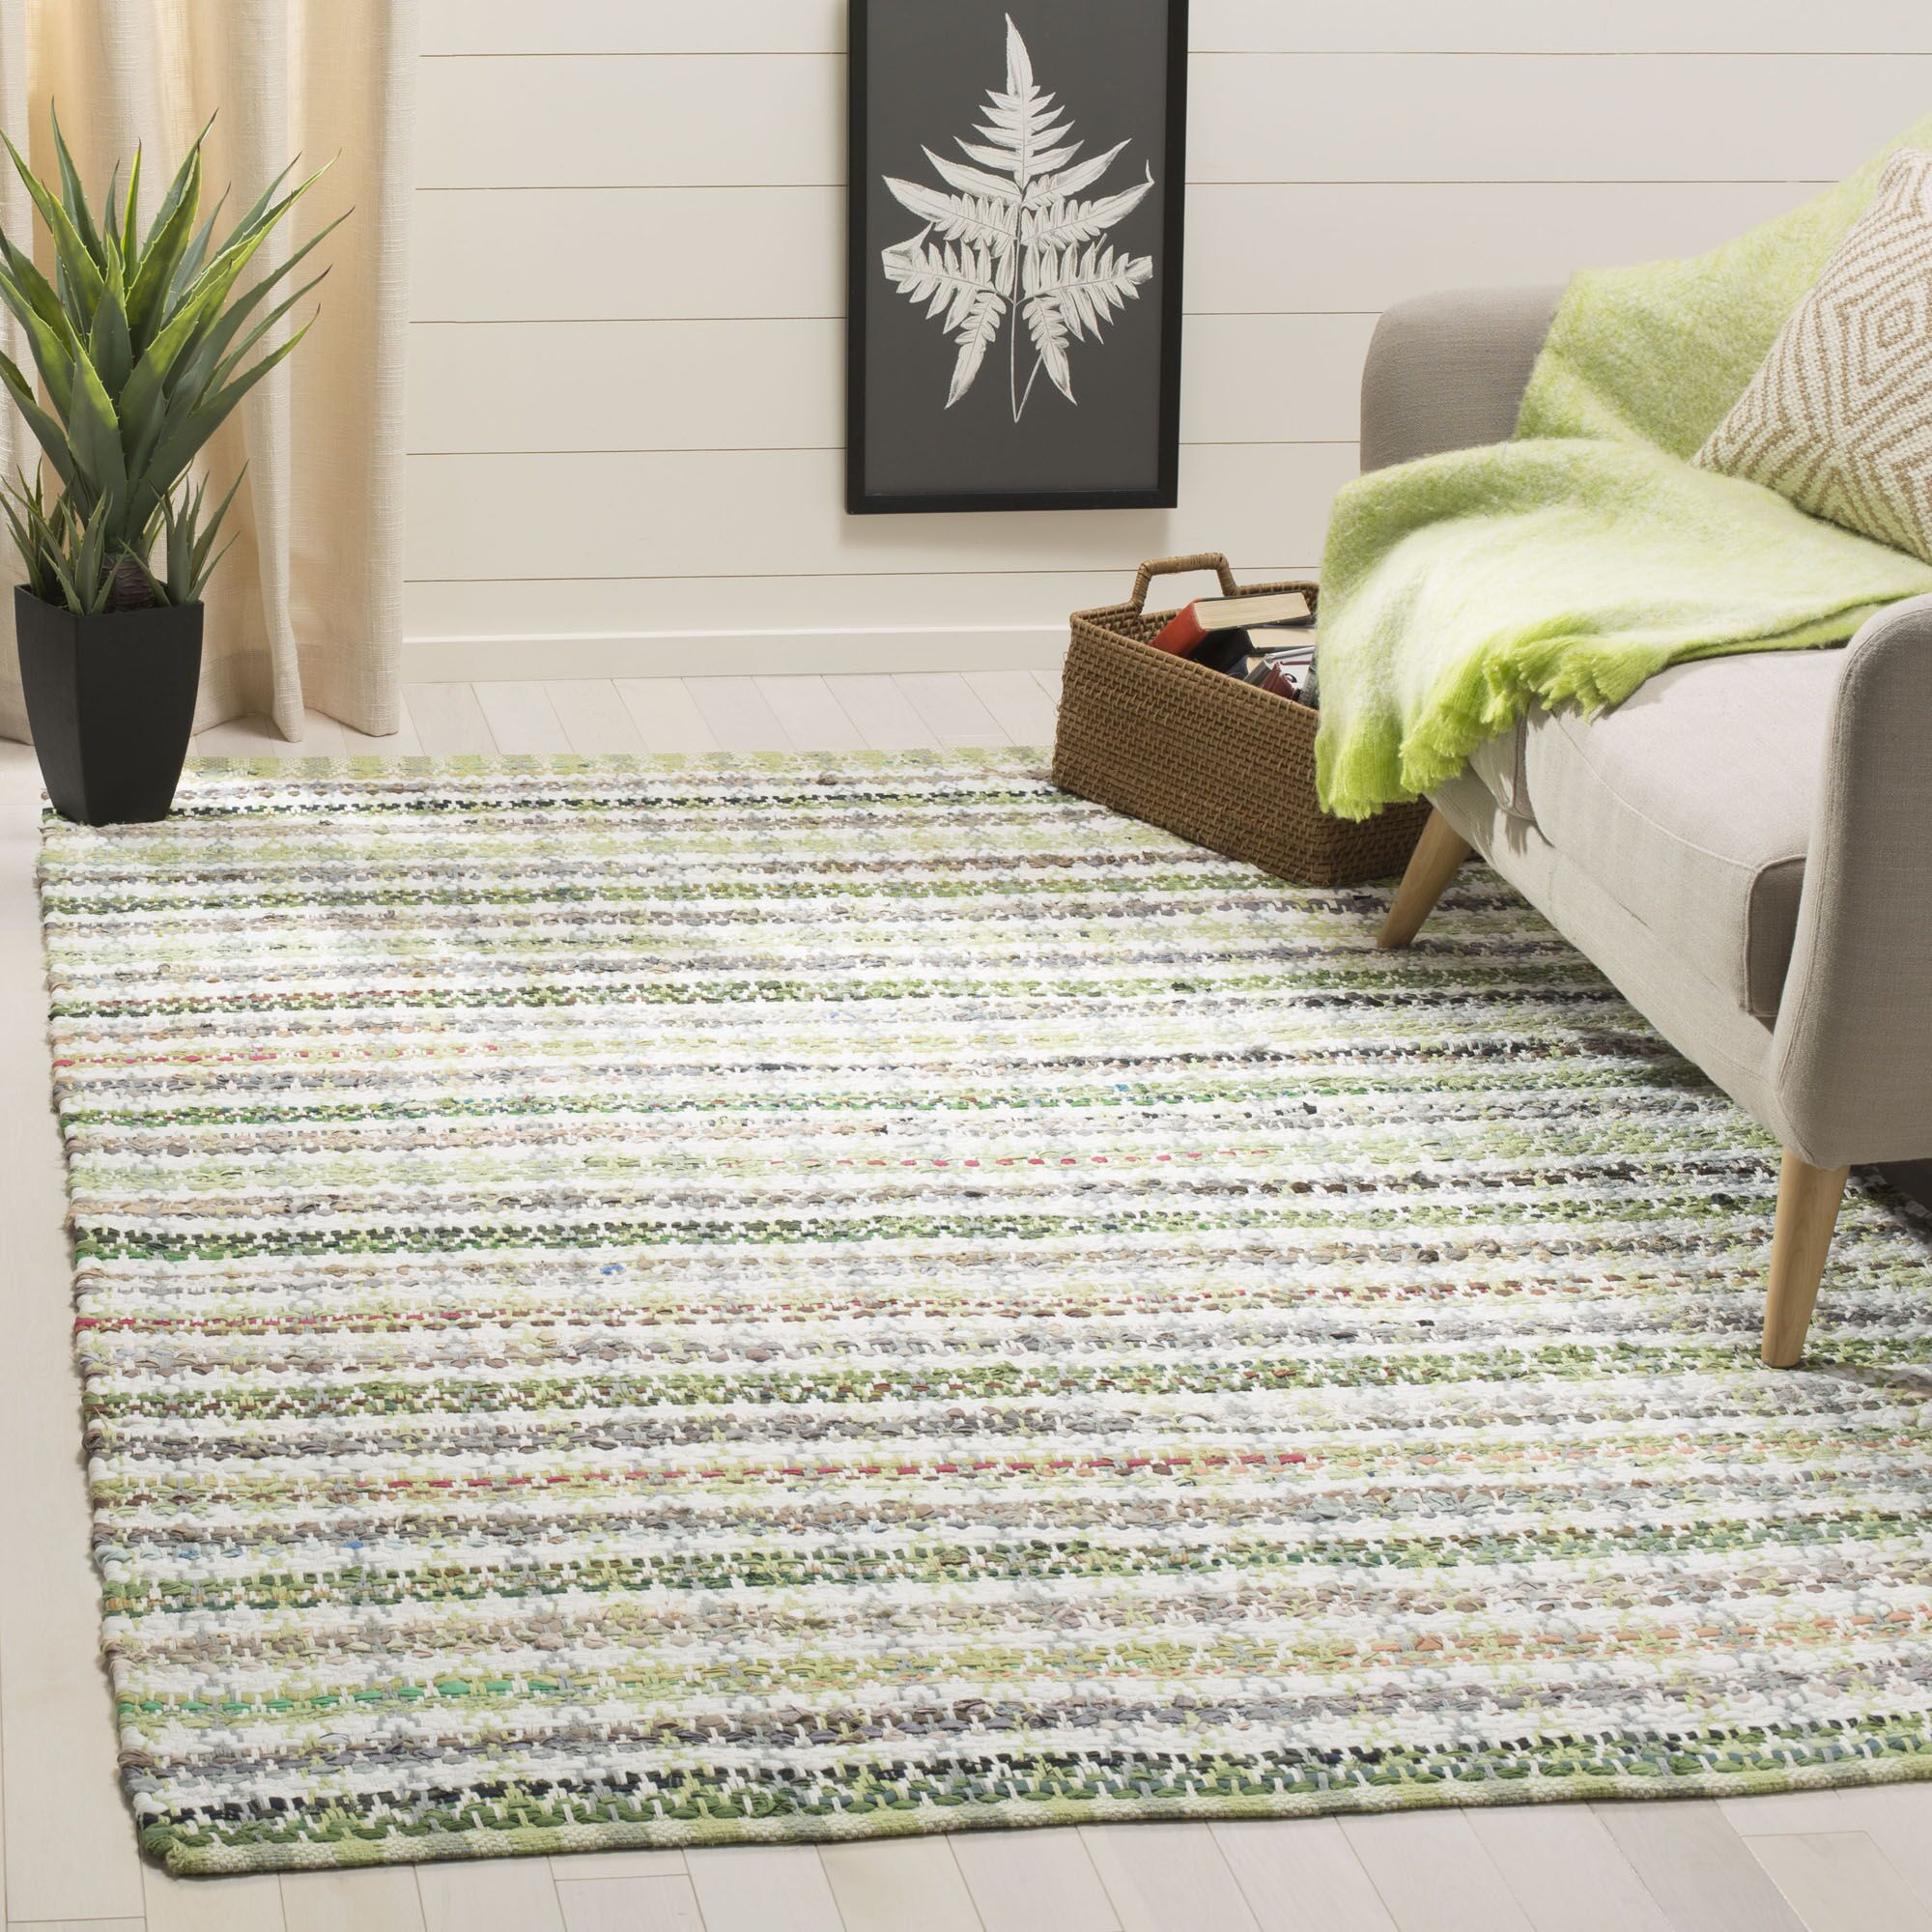 Ingleside Hand-Woven Green/Gray Area Rug Rug Size: Rectangle 5' x 8'